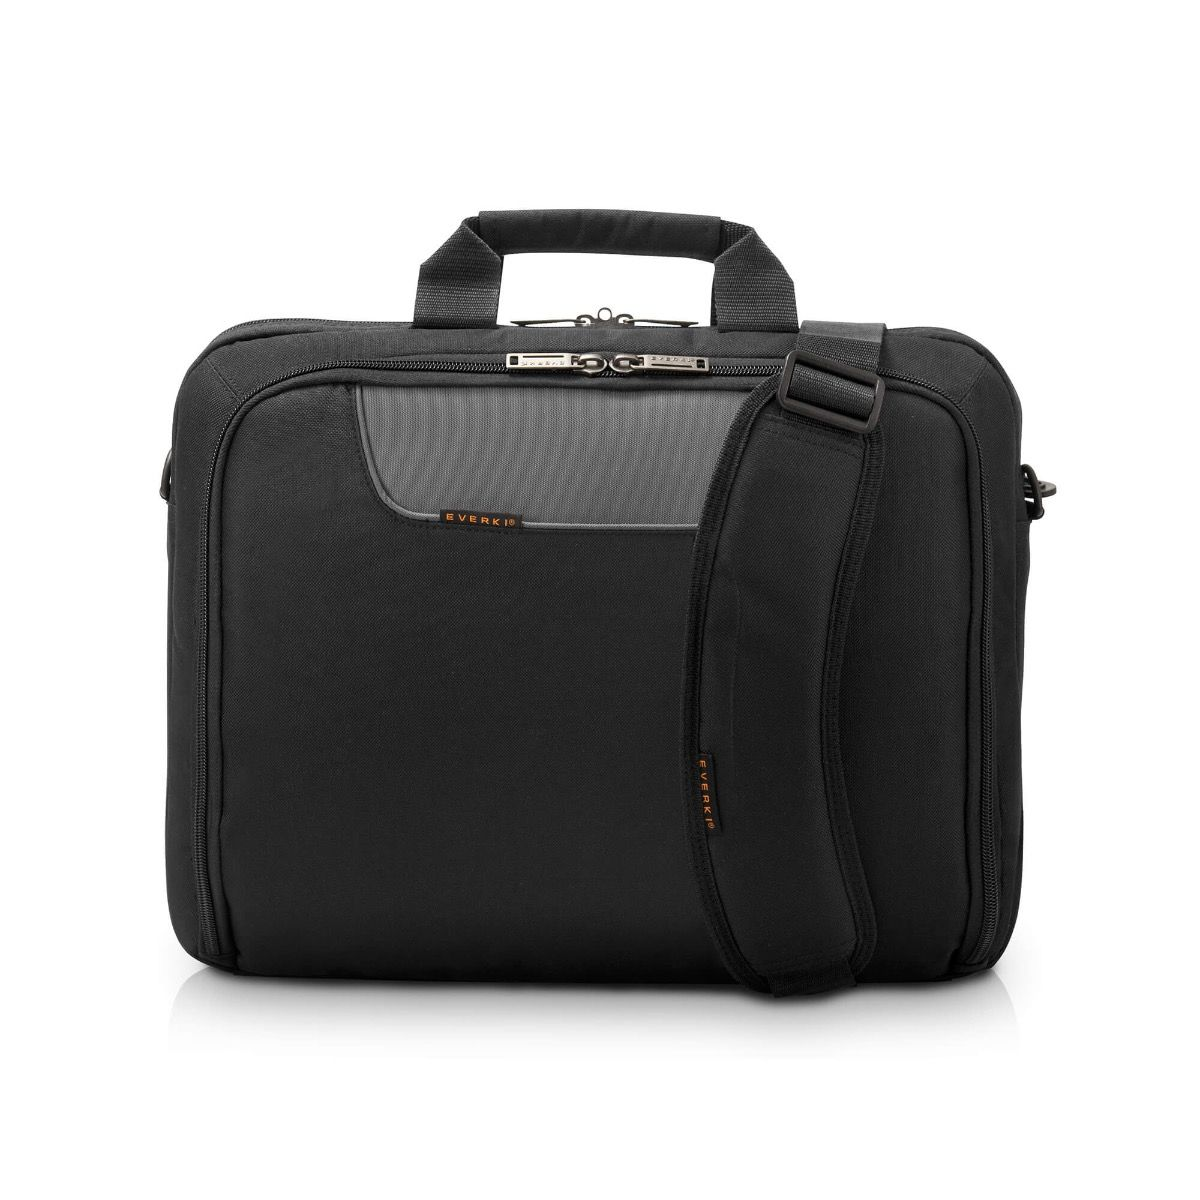 EVERKI Advance 16 Inch Laptop Briefcase